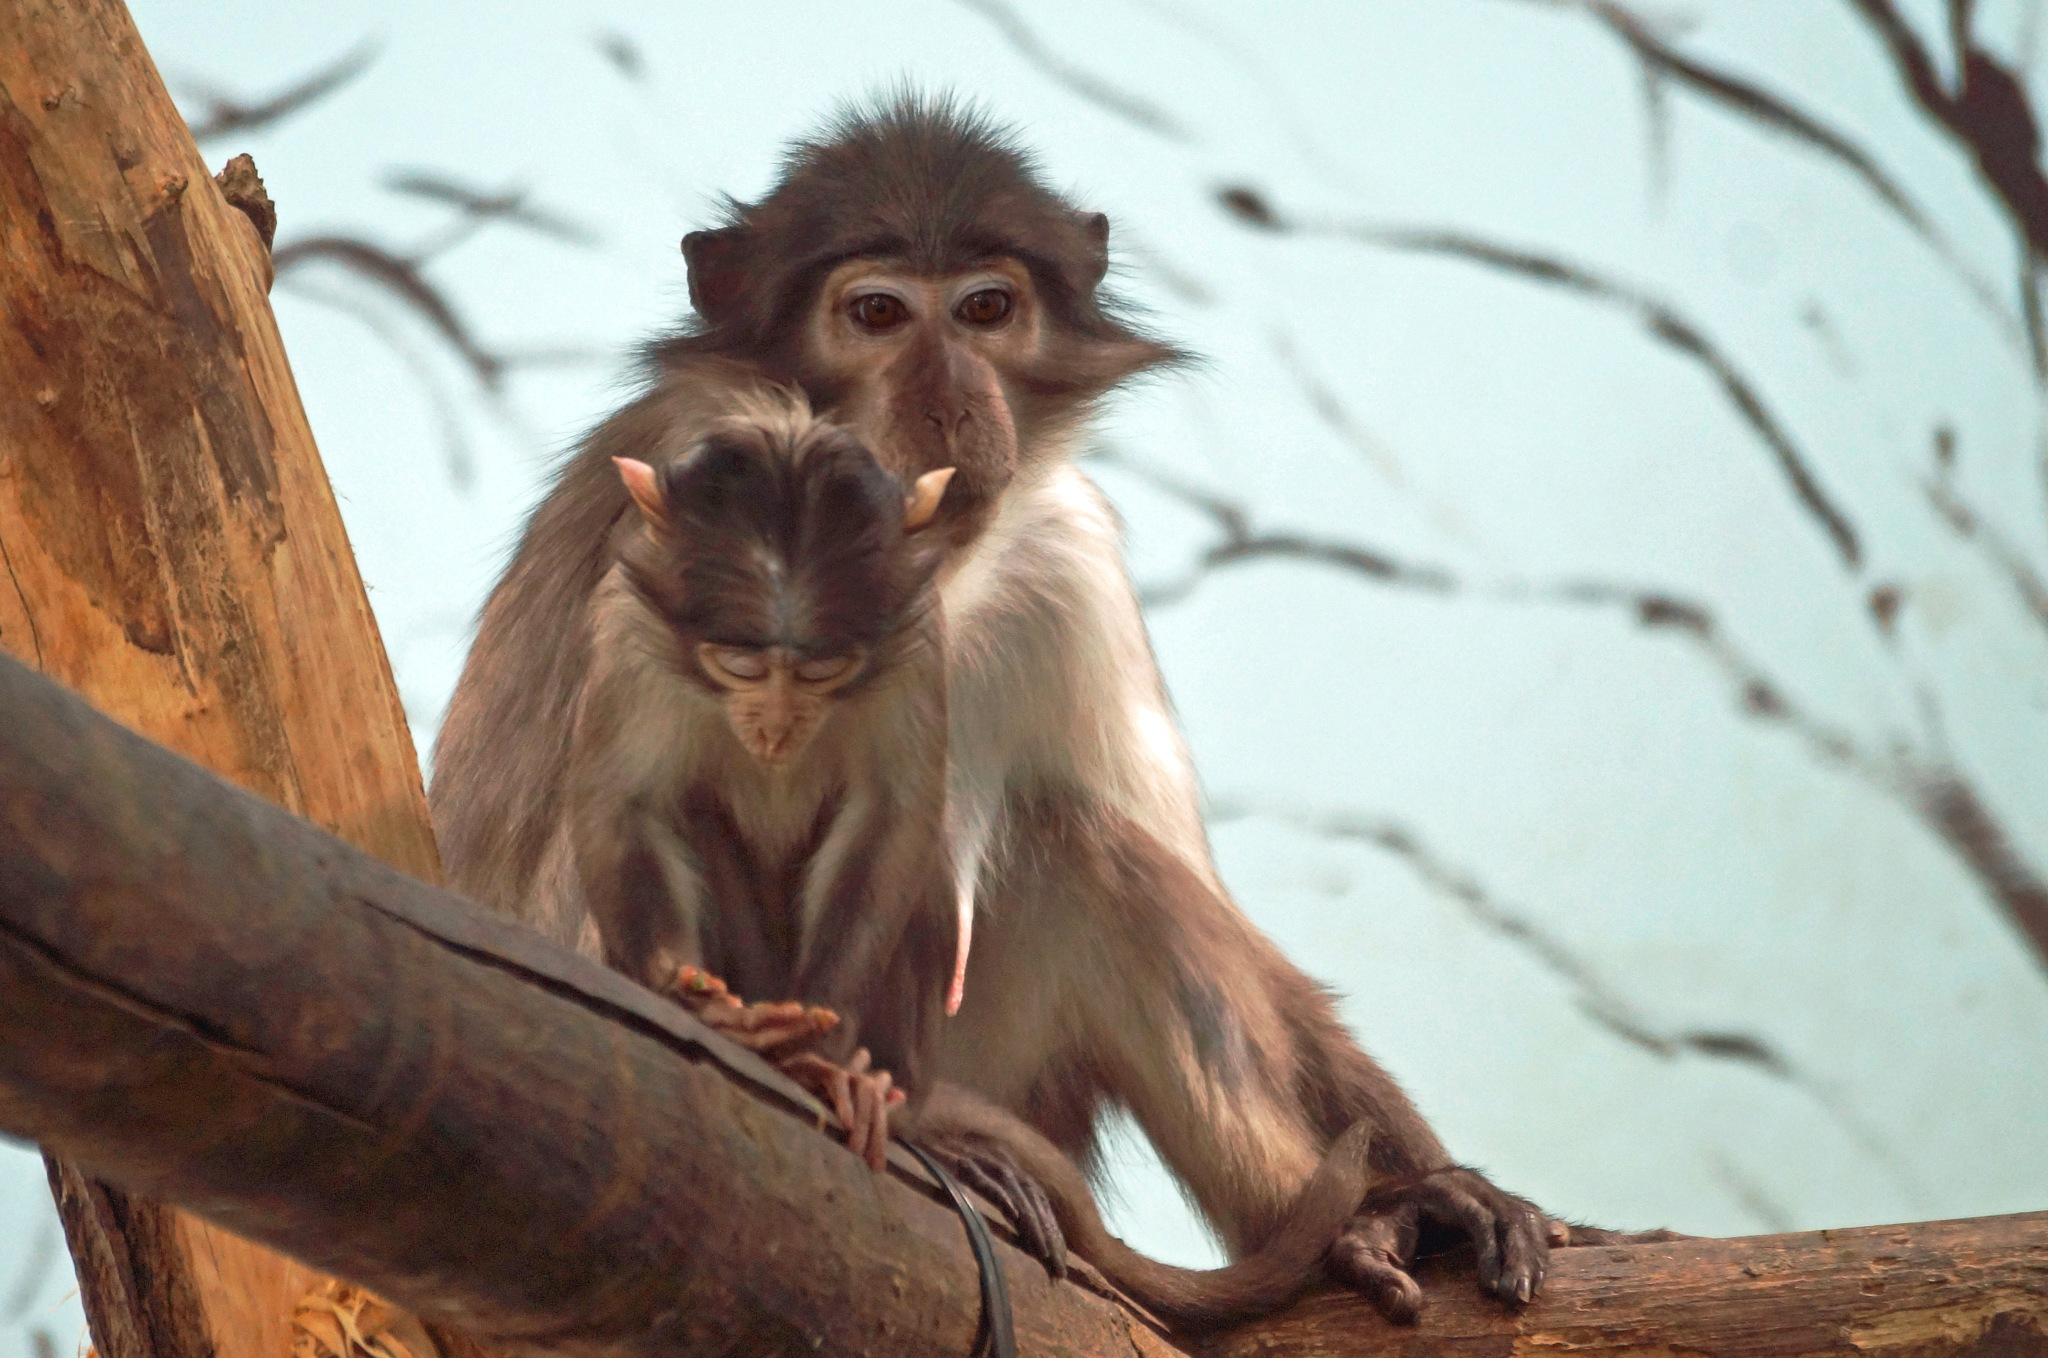 Monkey and Baby by Marian Baay